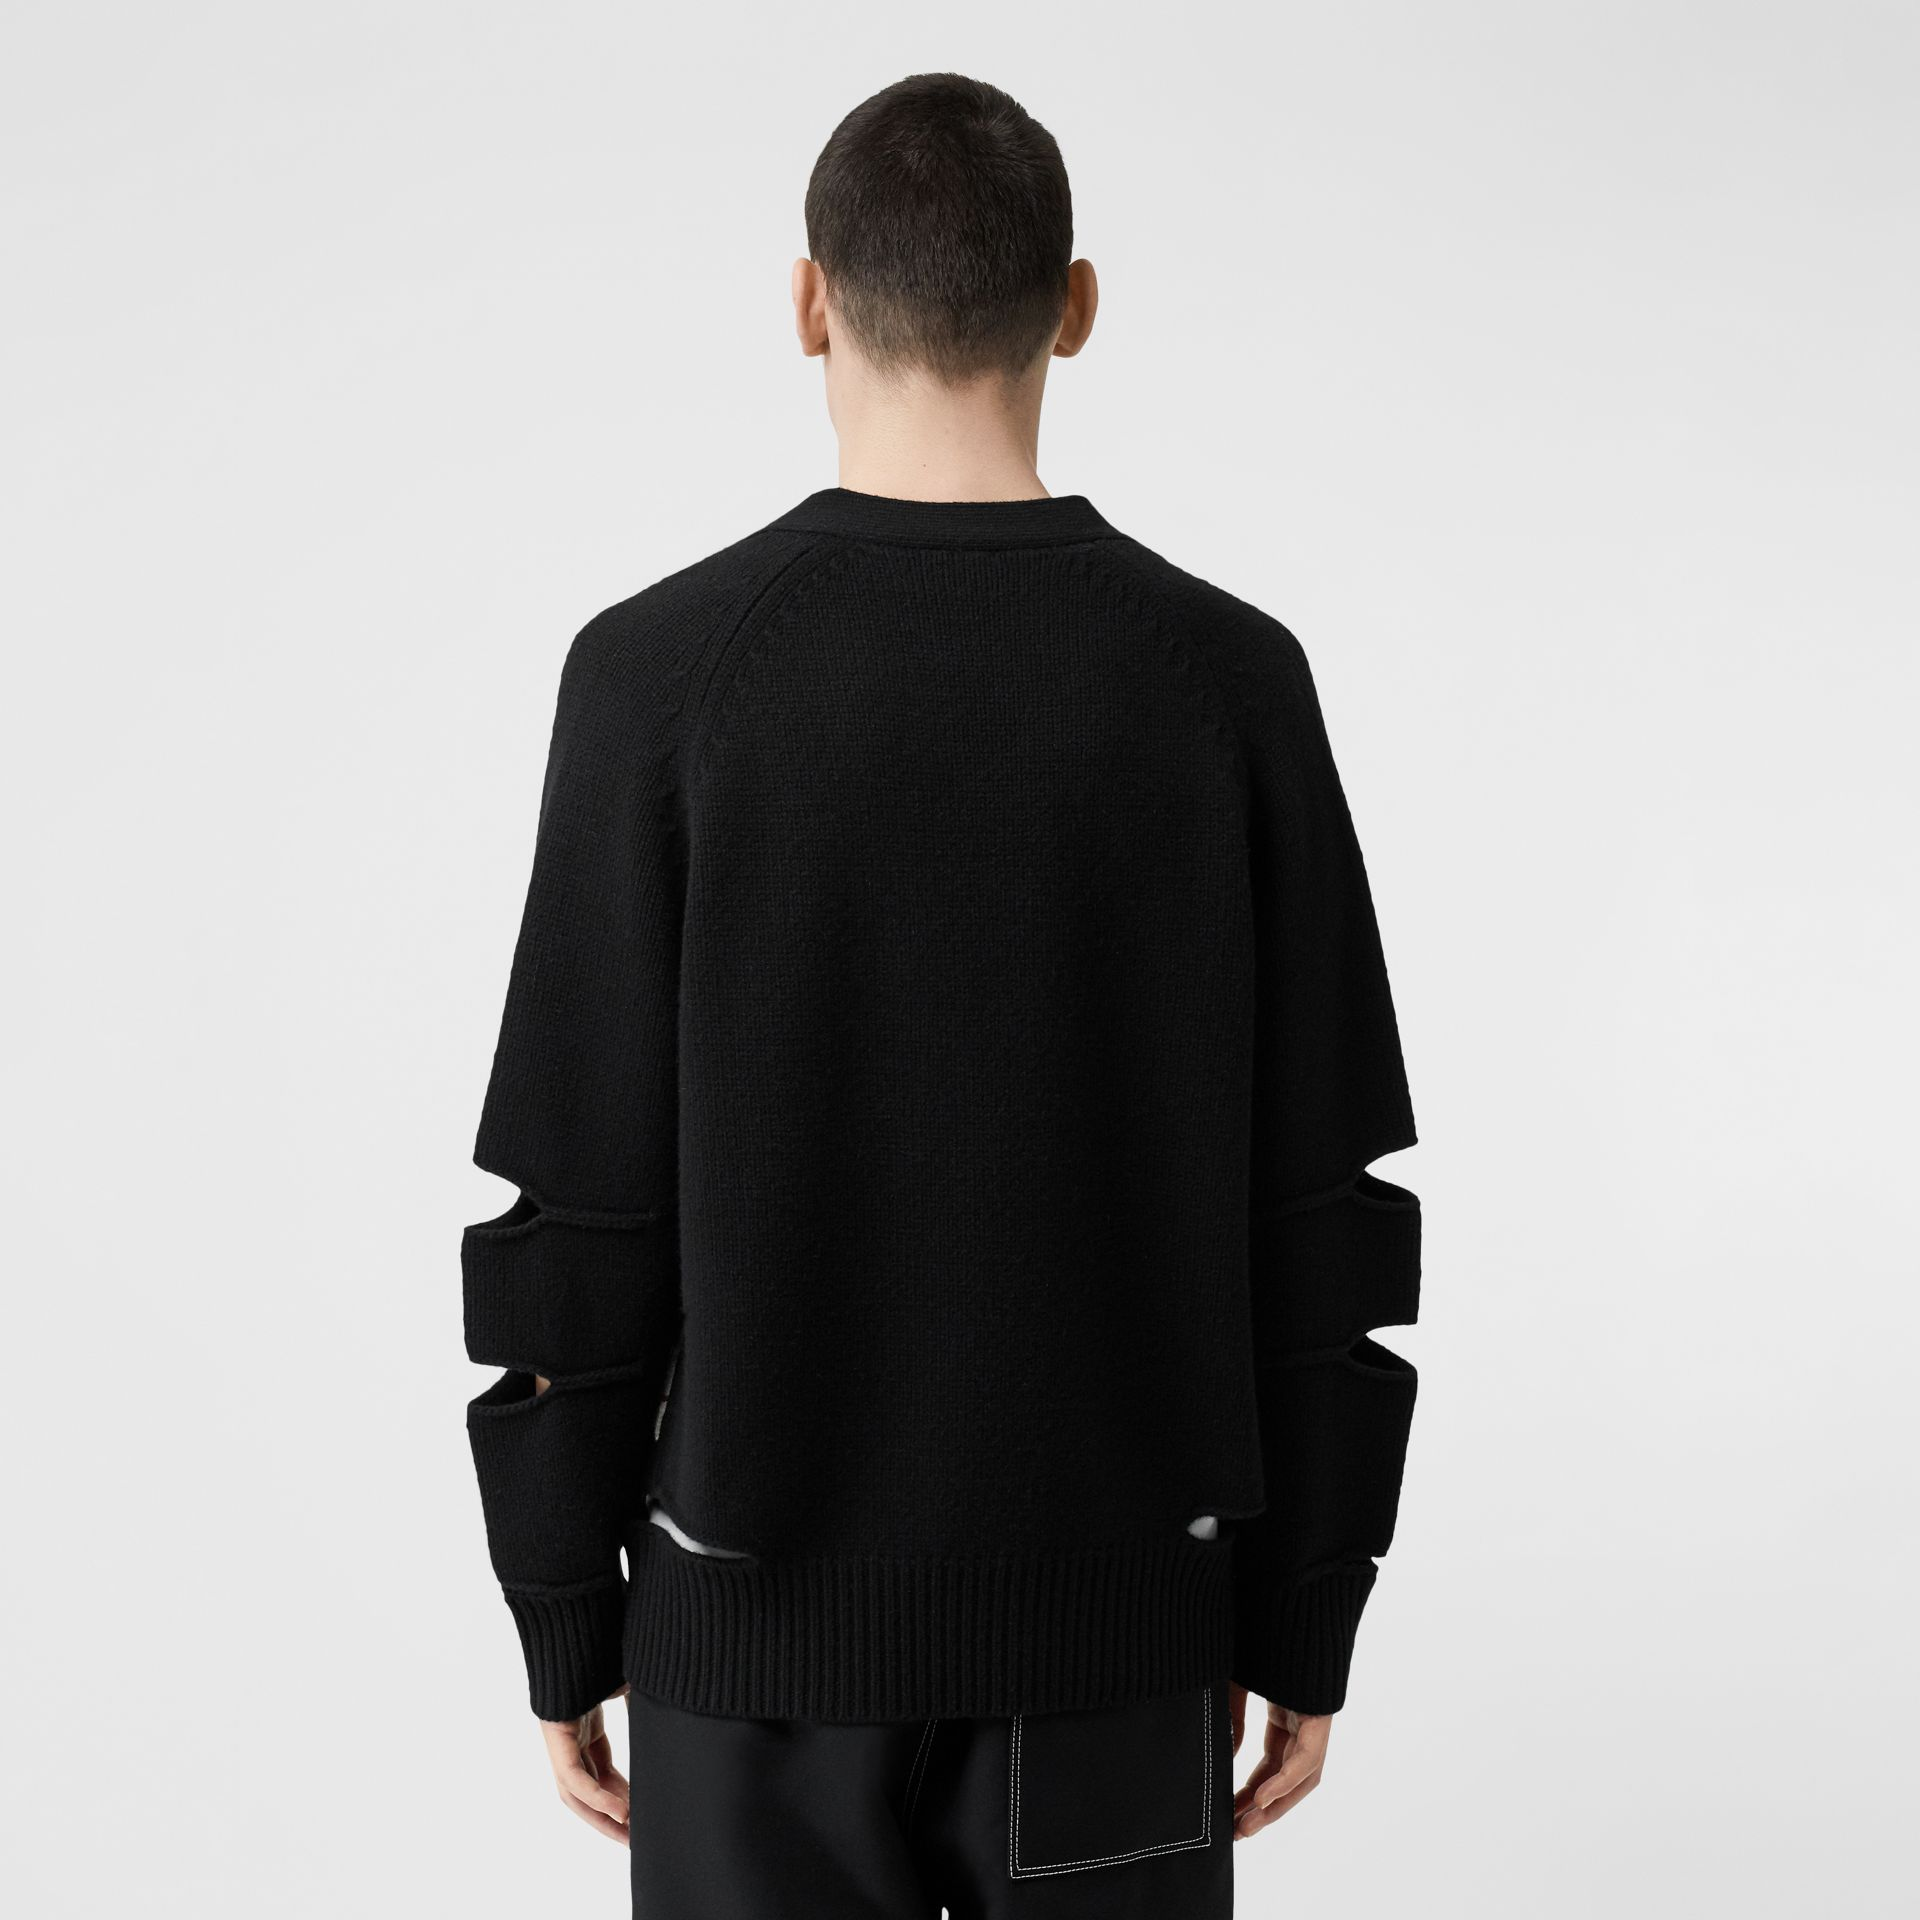 Cut-out Detail Merino Wool Cashmere Cardigan in Black - Men | Burberry Hong Kong S.A.R - gallery image 2